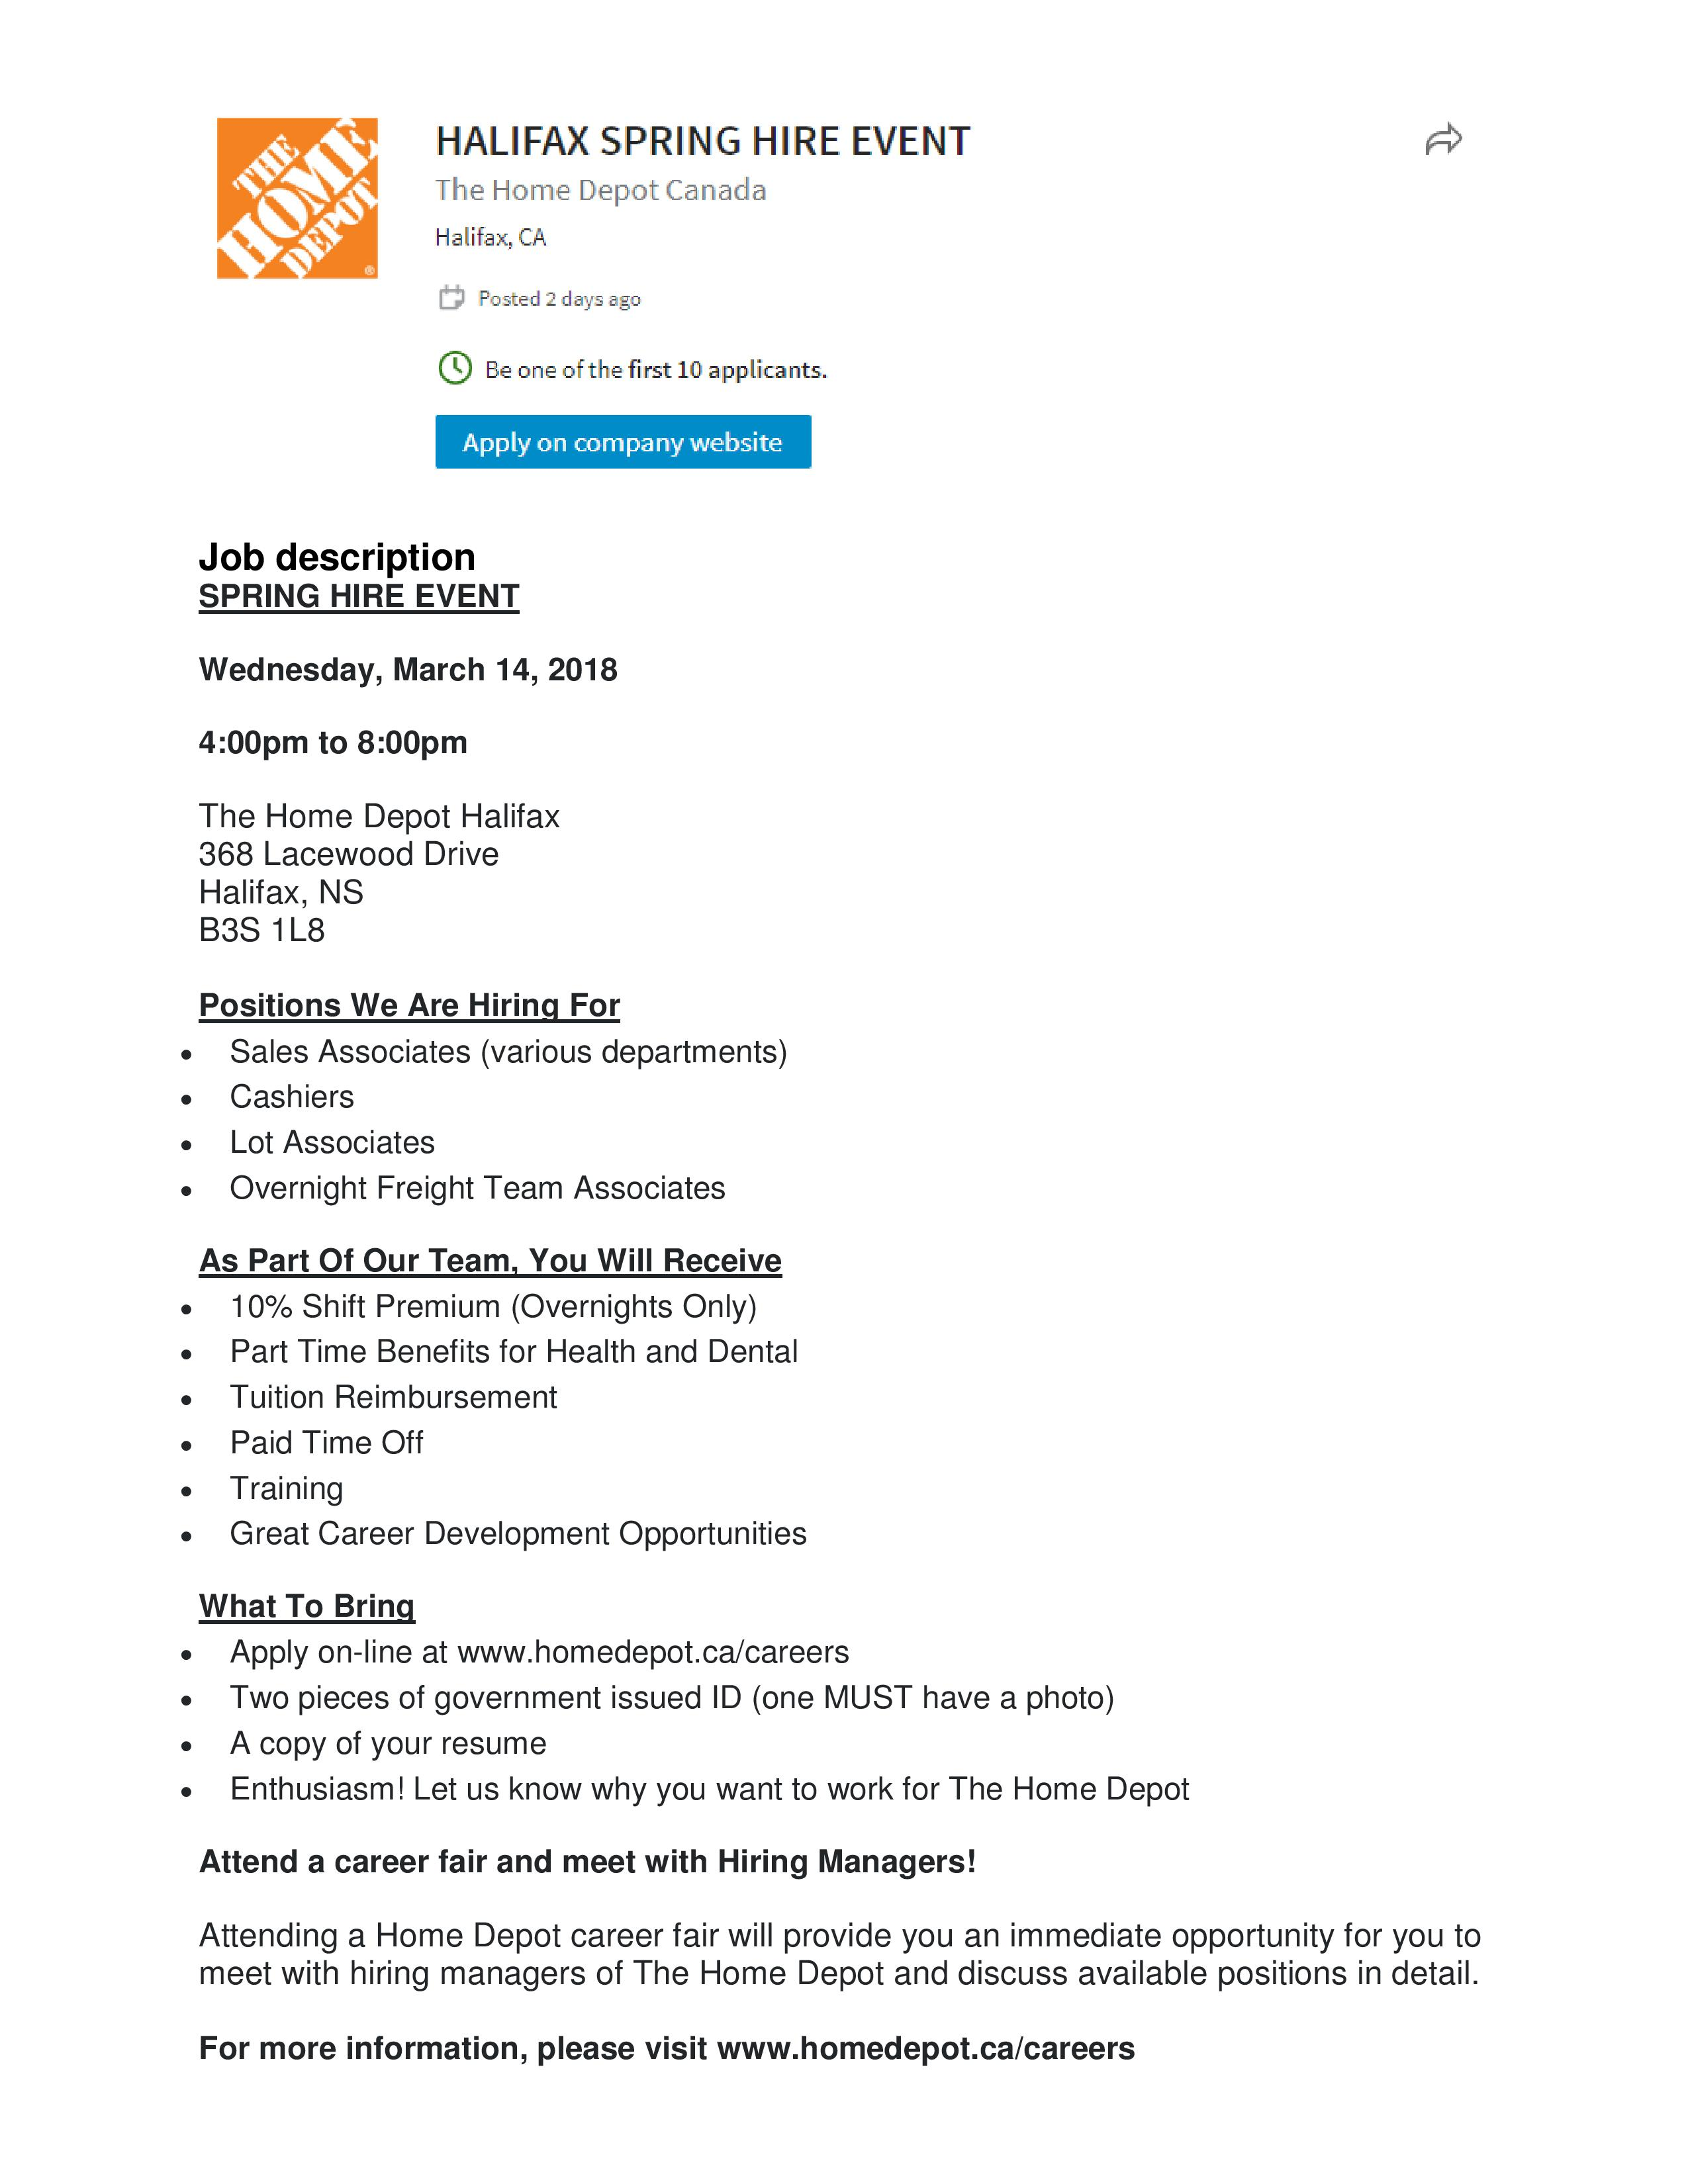 Home Depot - Halifax Spring Hire Event | Opportunity Place